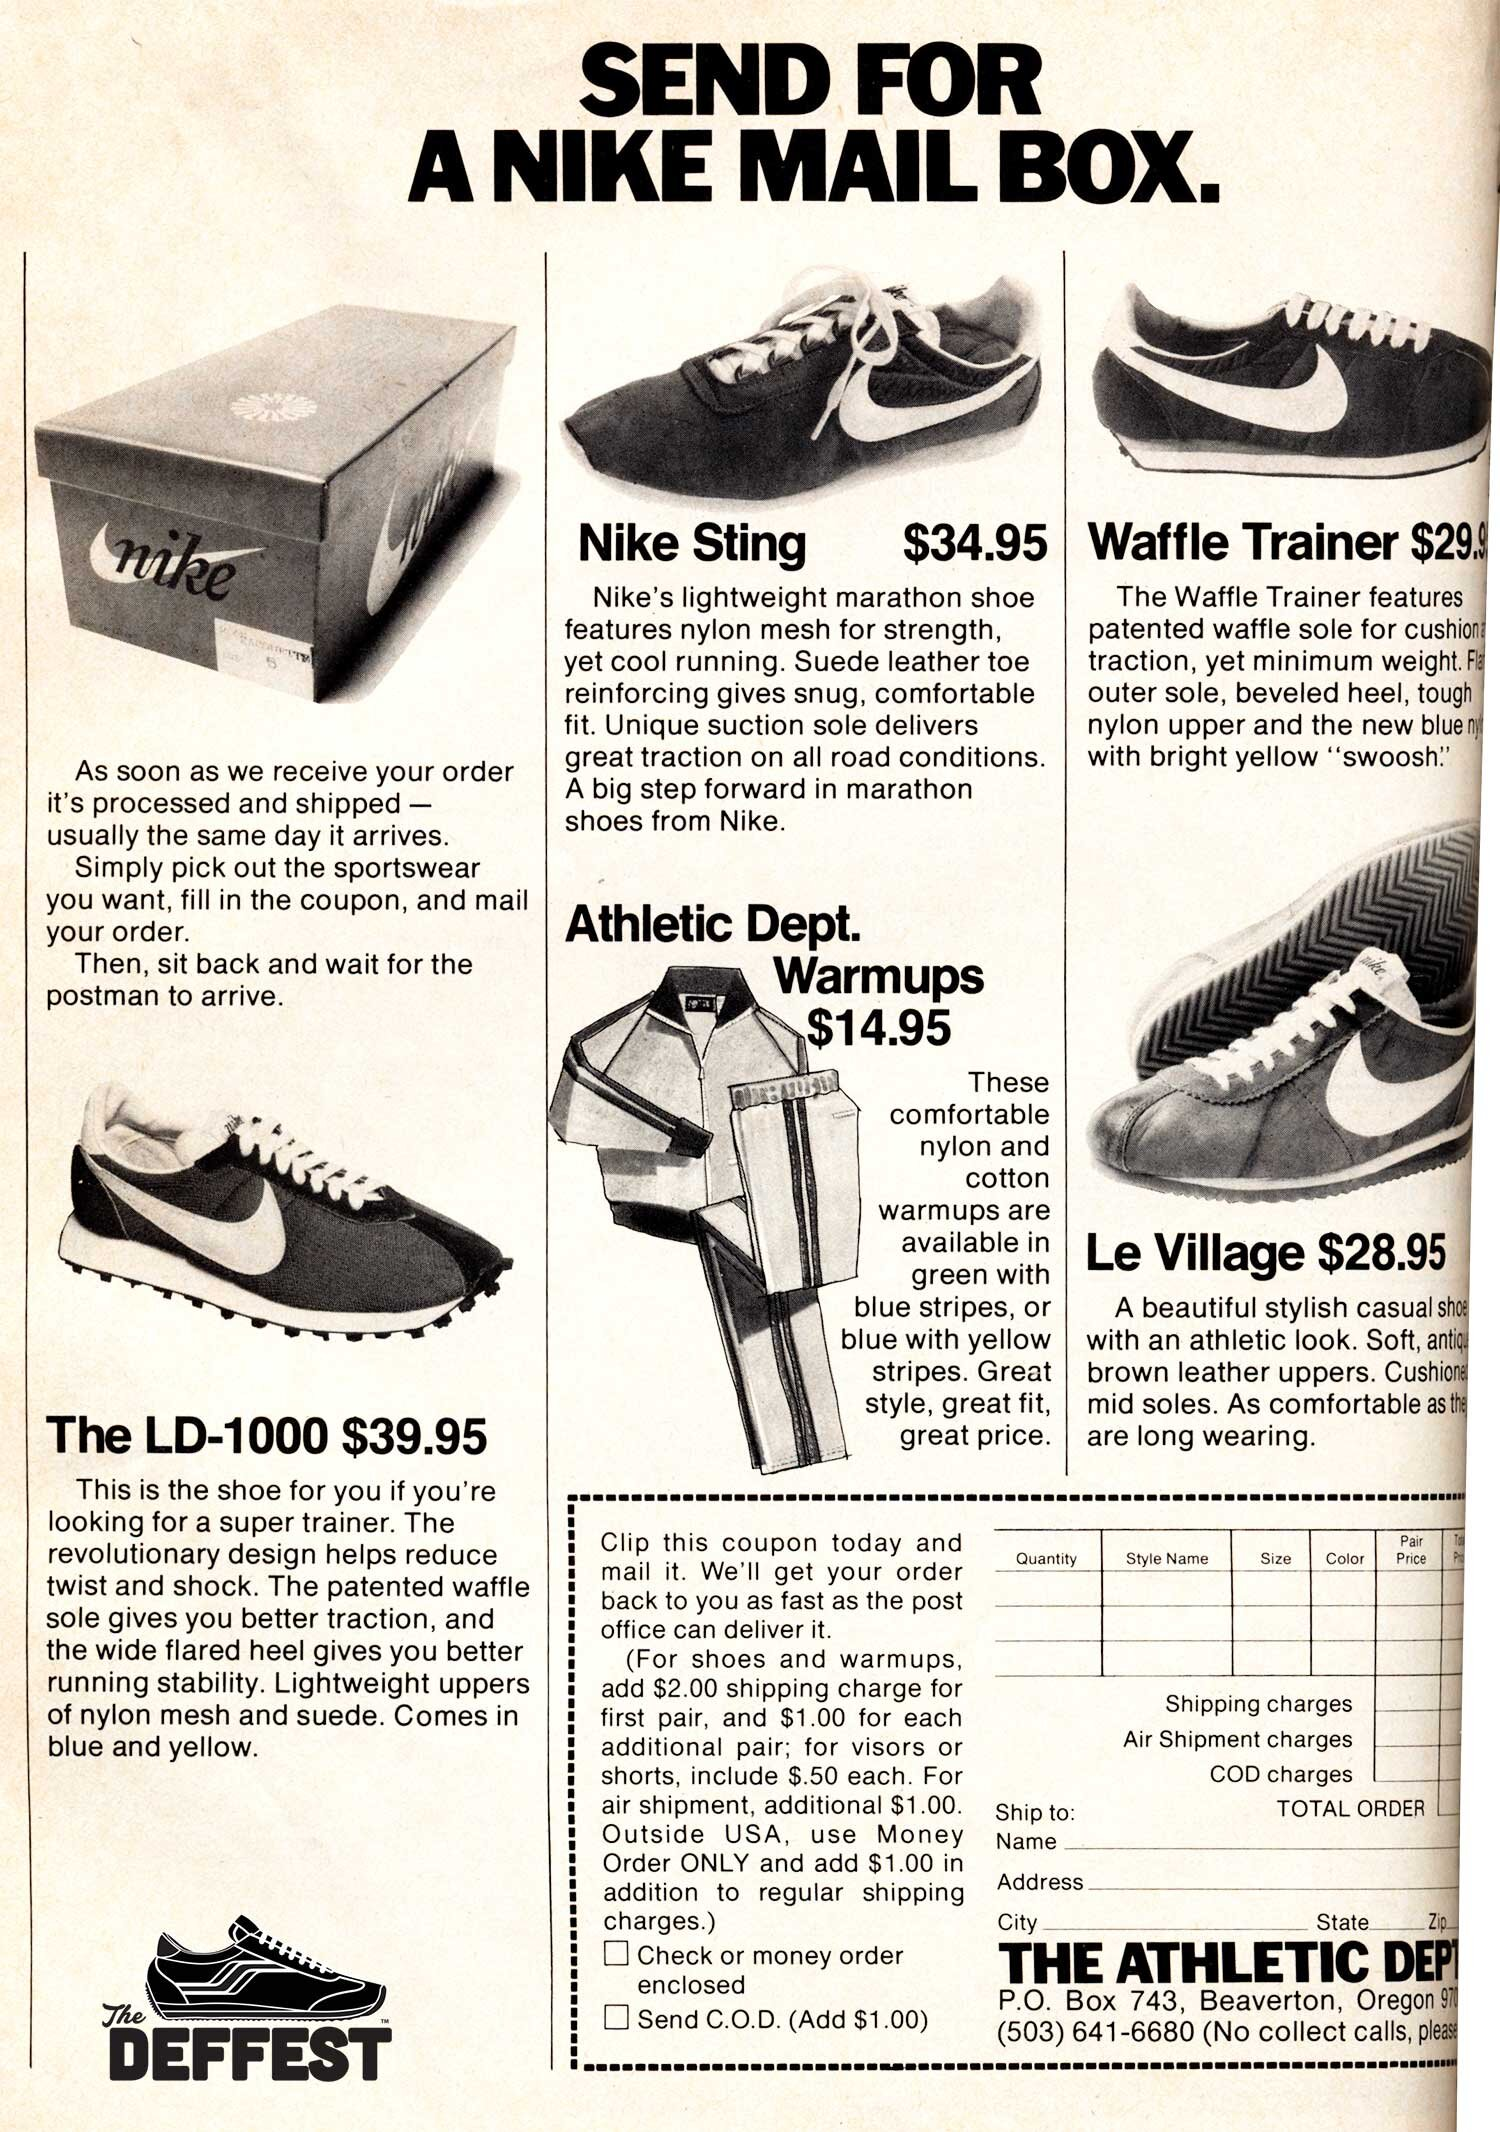 Vintage Nike LD-1000, Sting, Waffle trainer and Le Village 1977 sneaker ad @ The Deffest